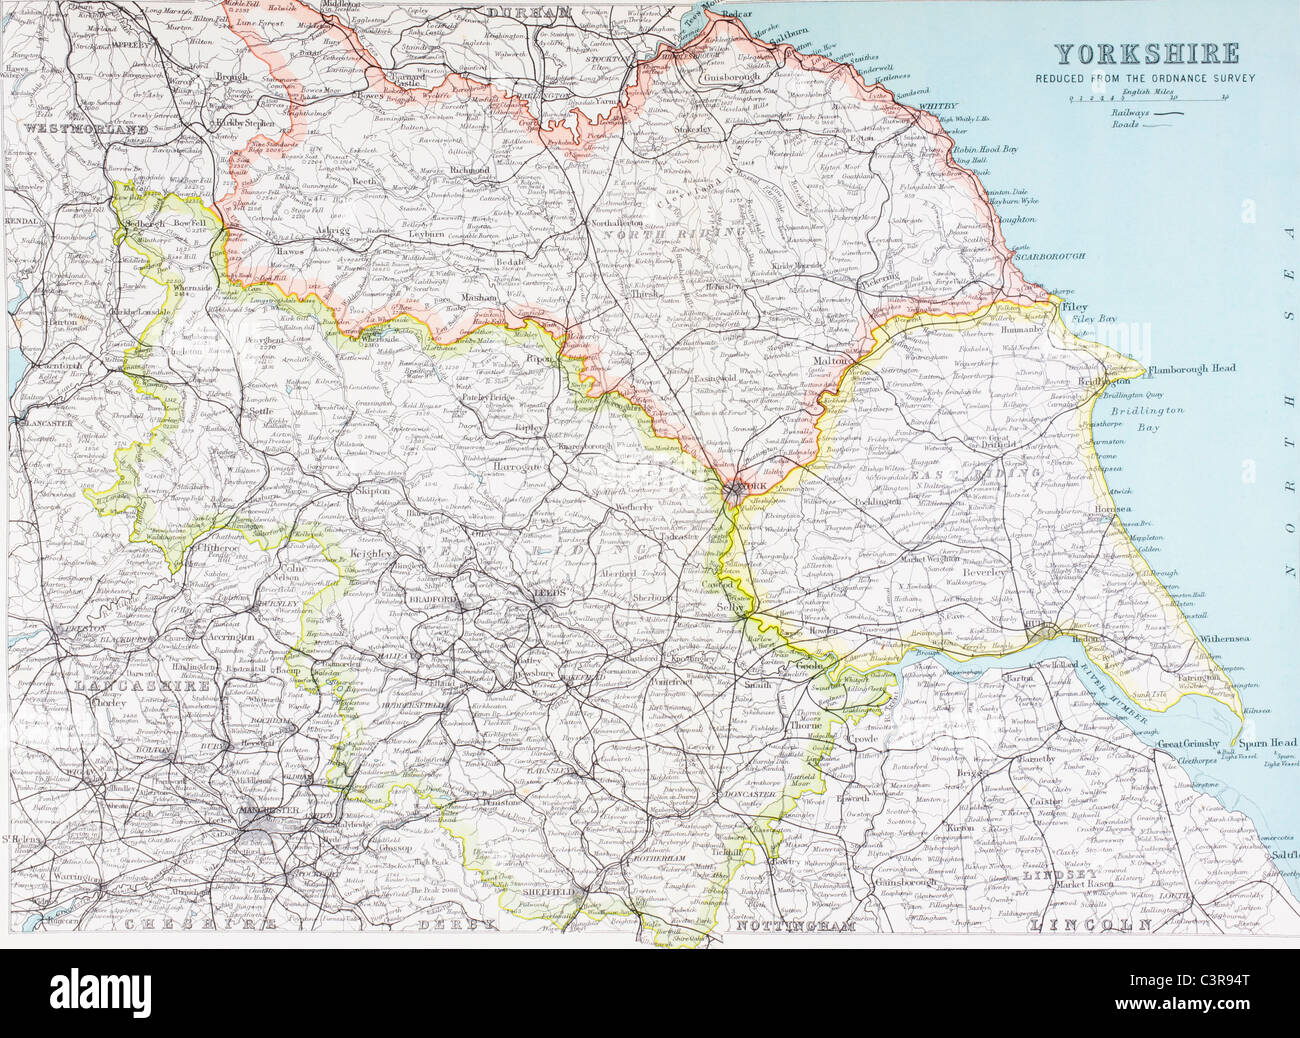 Map of Yorkshire, England in the late 19th century. - Stock Image